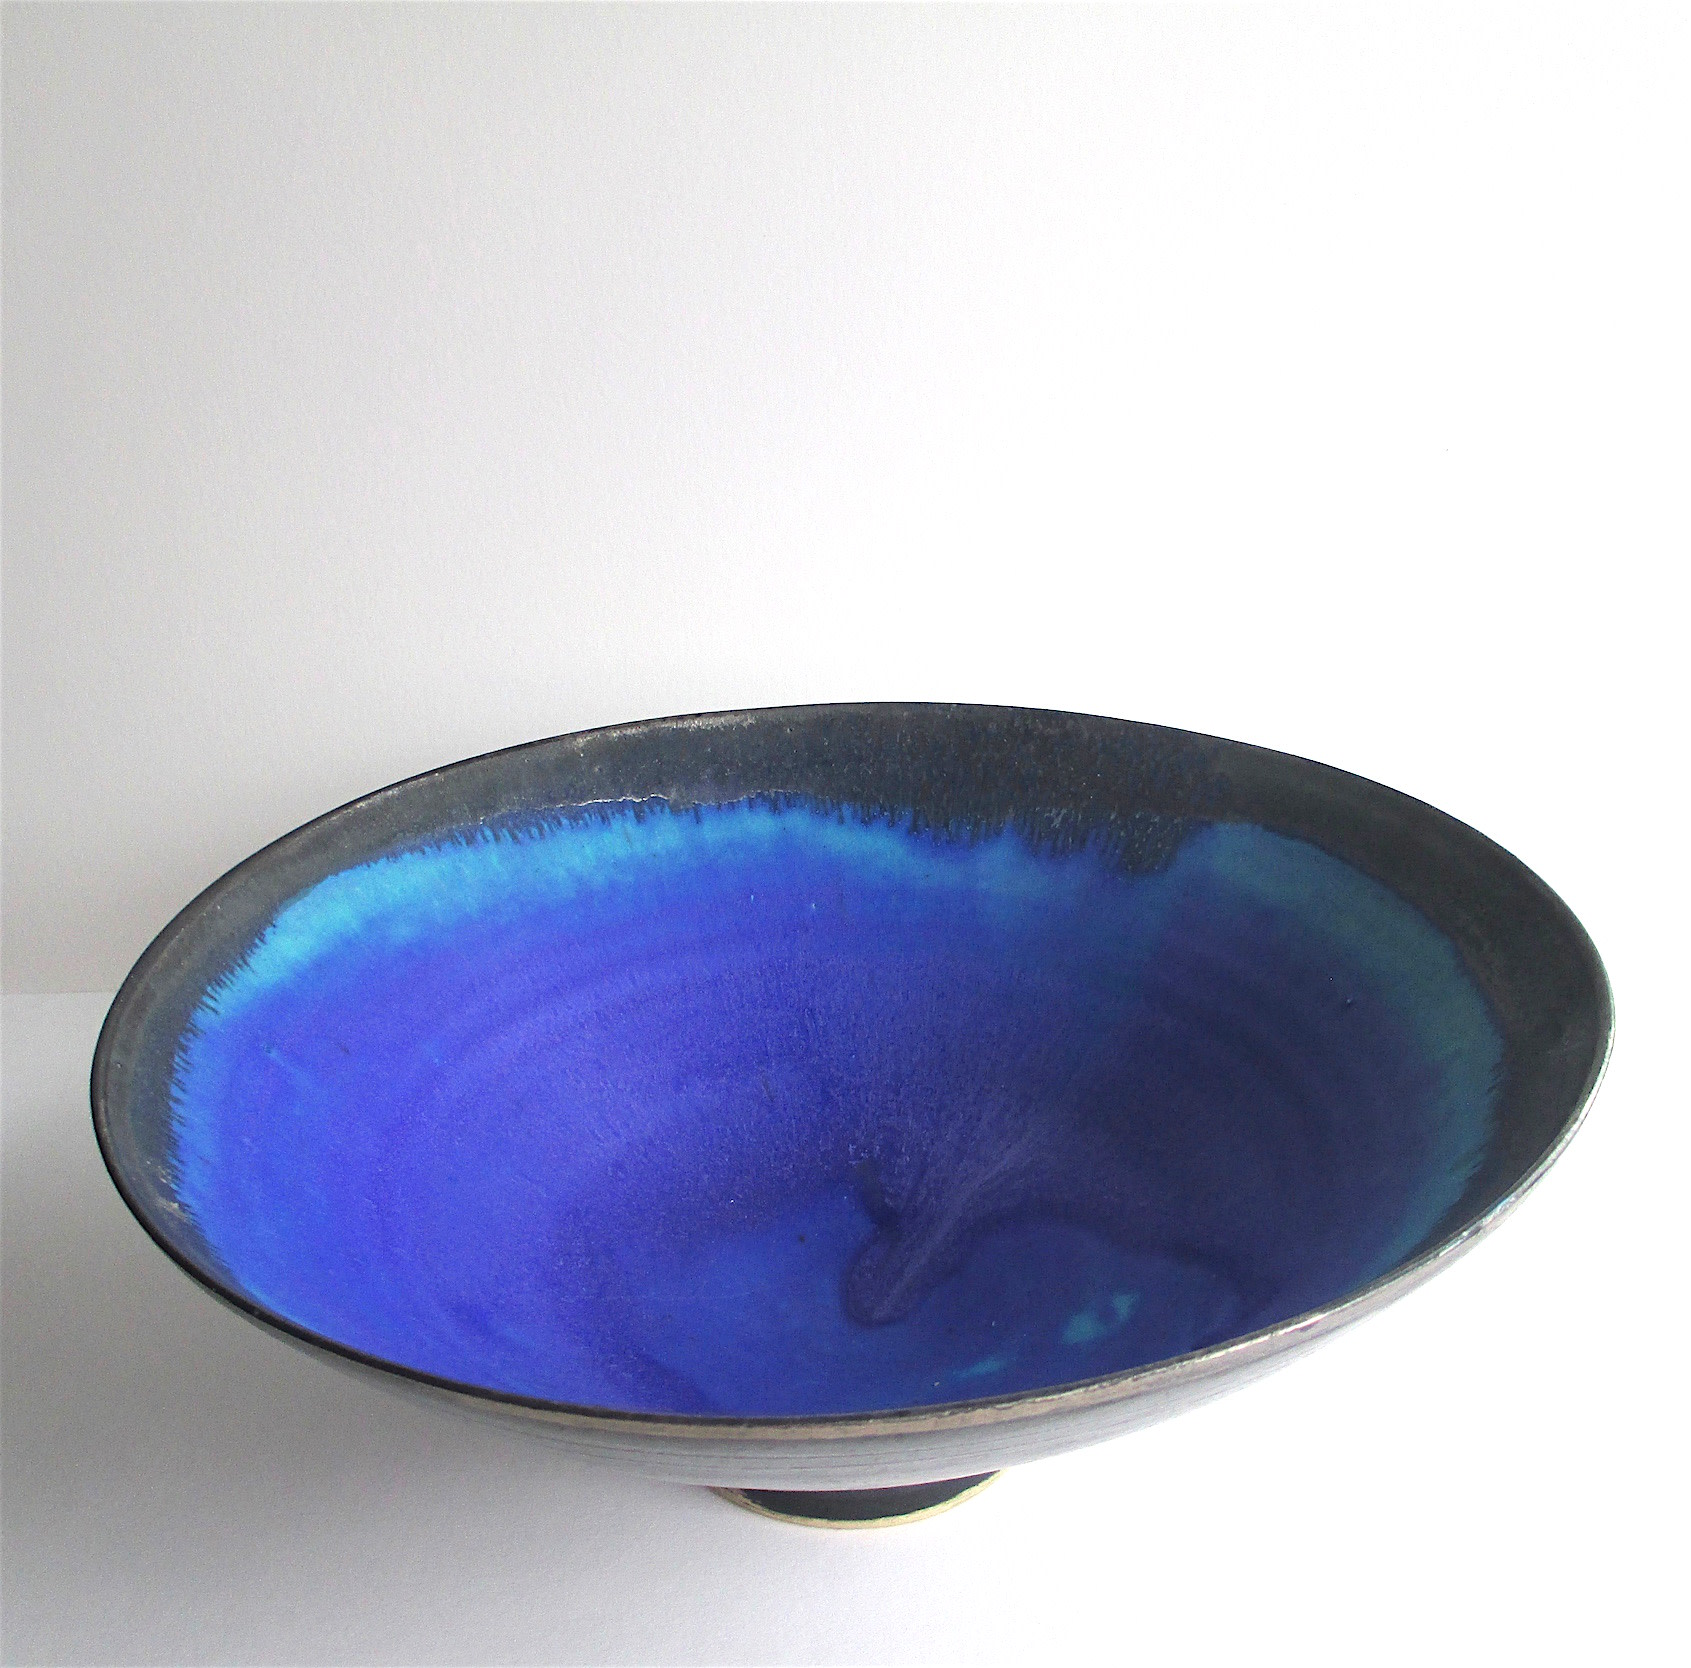 "<span class=""link fancybox-details-link""><a href=""/artists/44-sarah-perry/works/6973-sarah-perry-silver-lustred-blue-pool-bowl-2020/"">View Detail Page</a></span><div class=""artist""><strong>Sarah Perry</strong></div> b. 1945 <div class=""title""><em>Silver lustred Blue Pool Bowl</em>, 2020</div> <div class=""signed_and_dated"">impressed with the artist's seal mark 'SP'</div> <div class=""medium"">Stoneware</div> <div class=""dimensions"">h. 12 x 26 cm </div><div class=""price"">£429.00</div><div class=""copyright_line"">Own Art: £ 42.90 x 10 Months, 0% APR</div>"